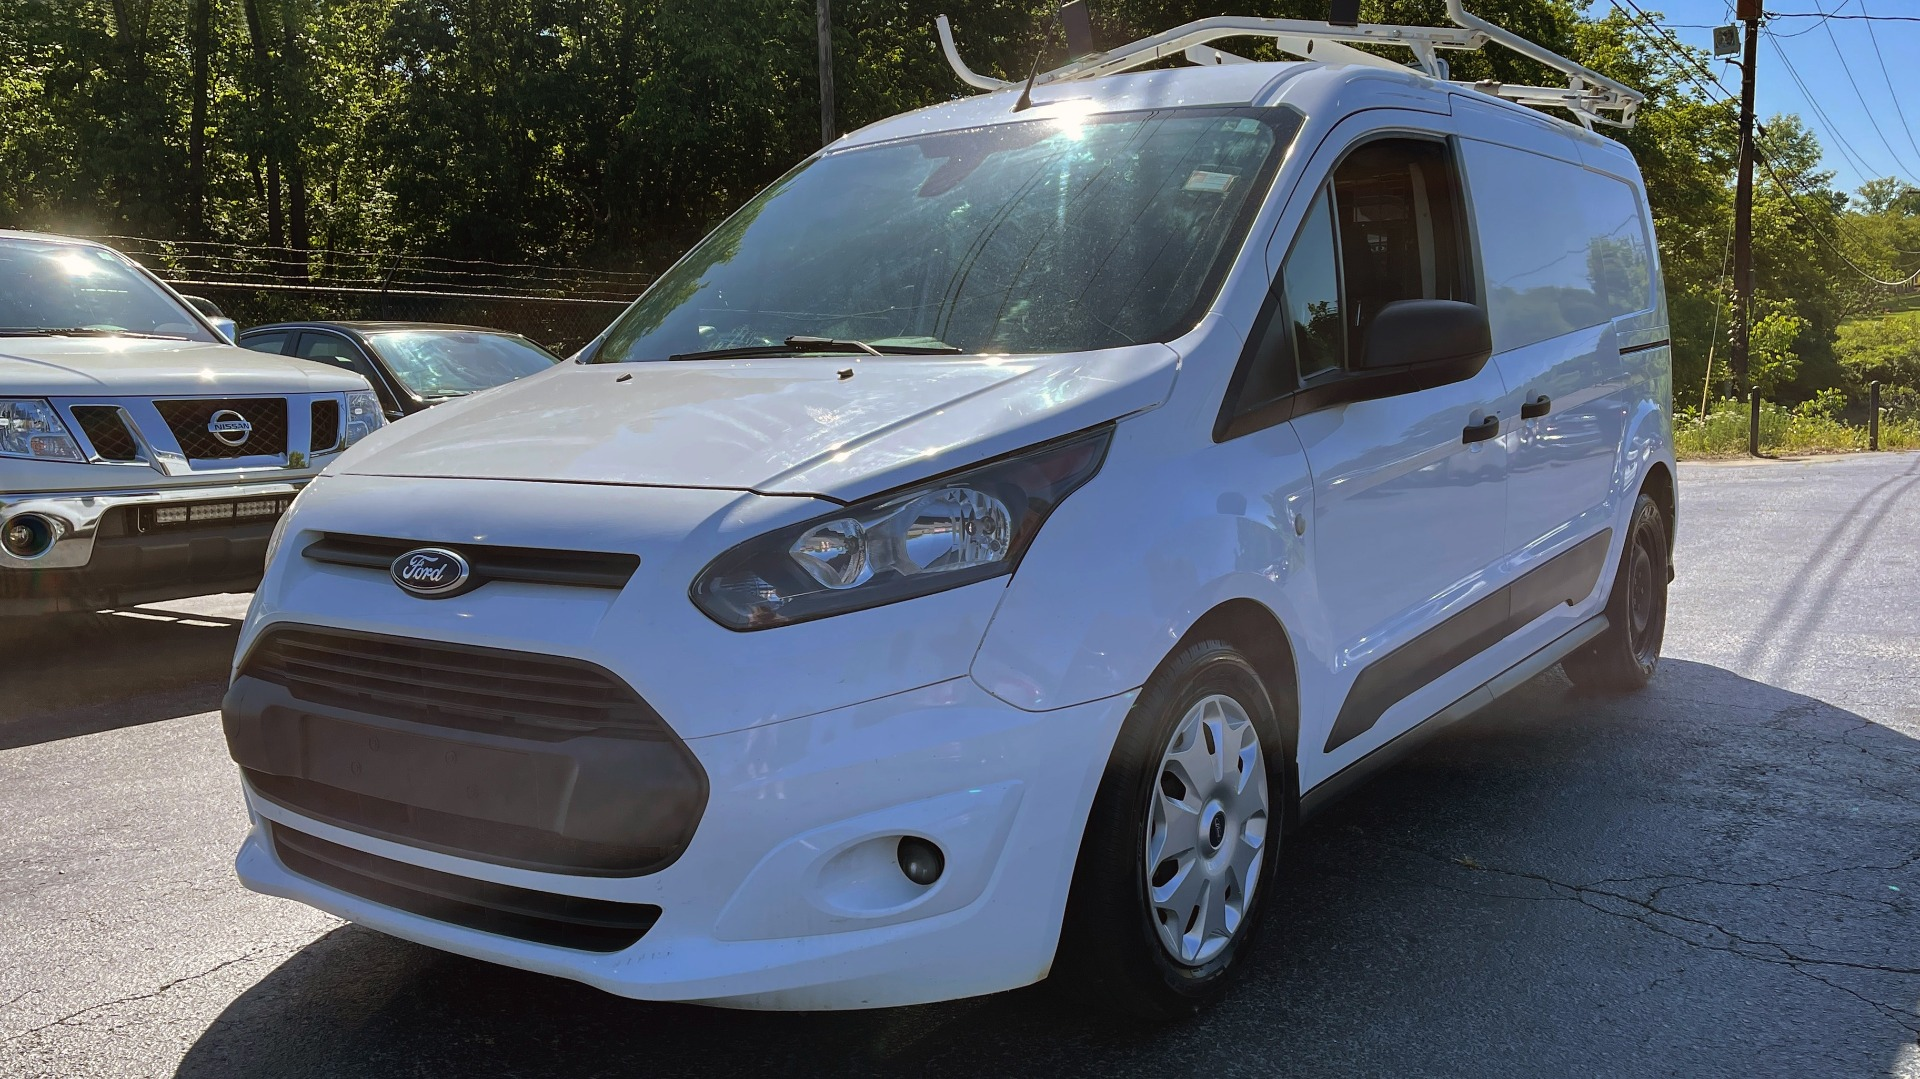 Used 2015 Ford TRANSIT CONNECT XLT CARGO VAN LWB / 2.5L 4-CYL / 6-SPD AUTO / ROOF RACK for sale $10,500 at Formula Imports in Charlotte NC 28227 1